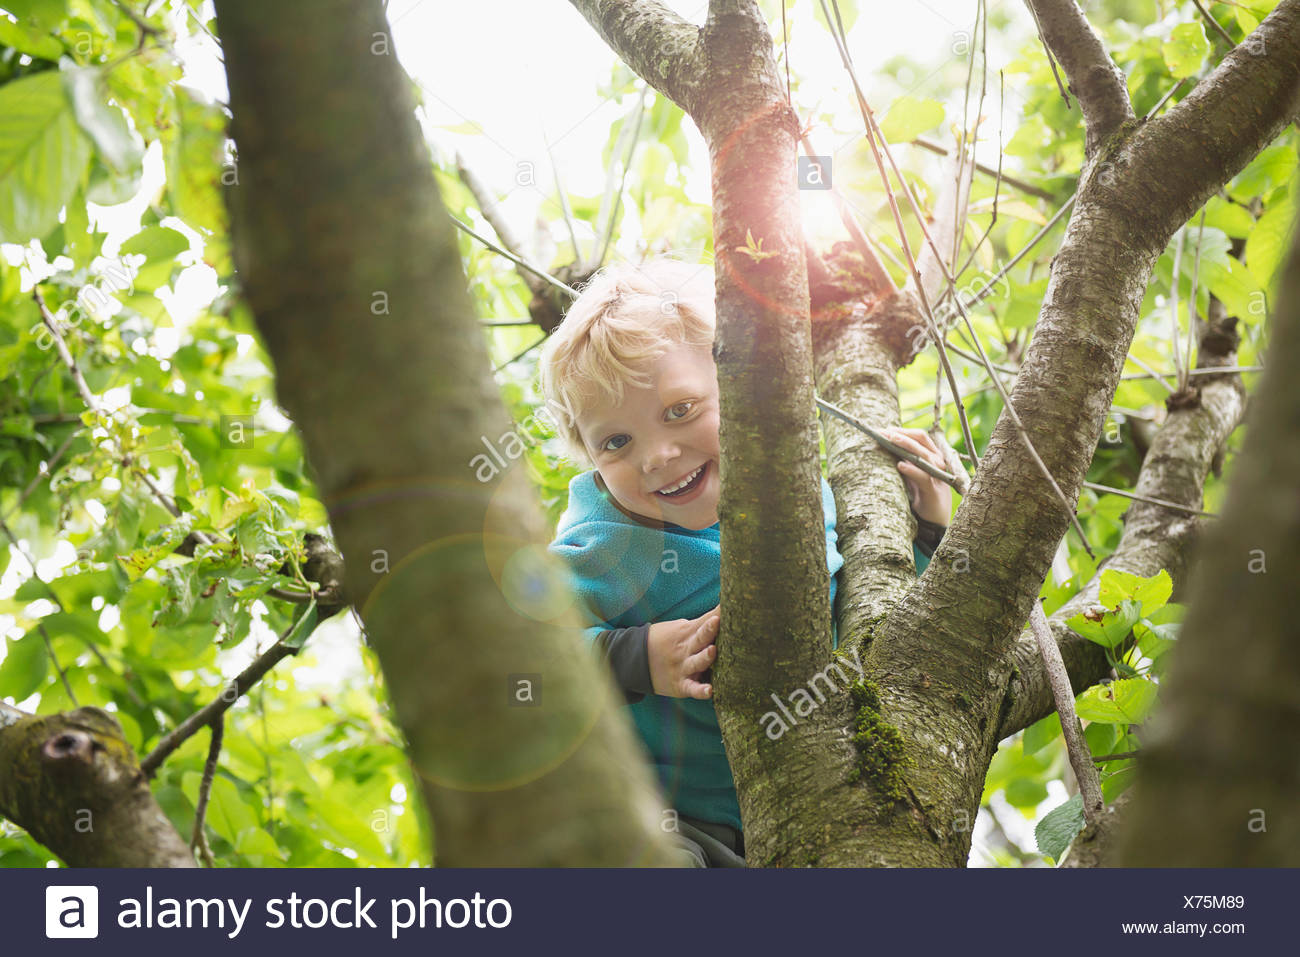 Young blonde boy in garden playing in cherry tree Stock Photo